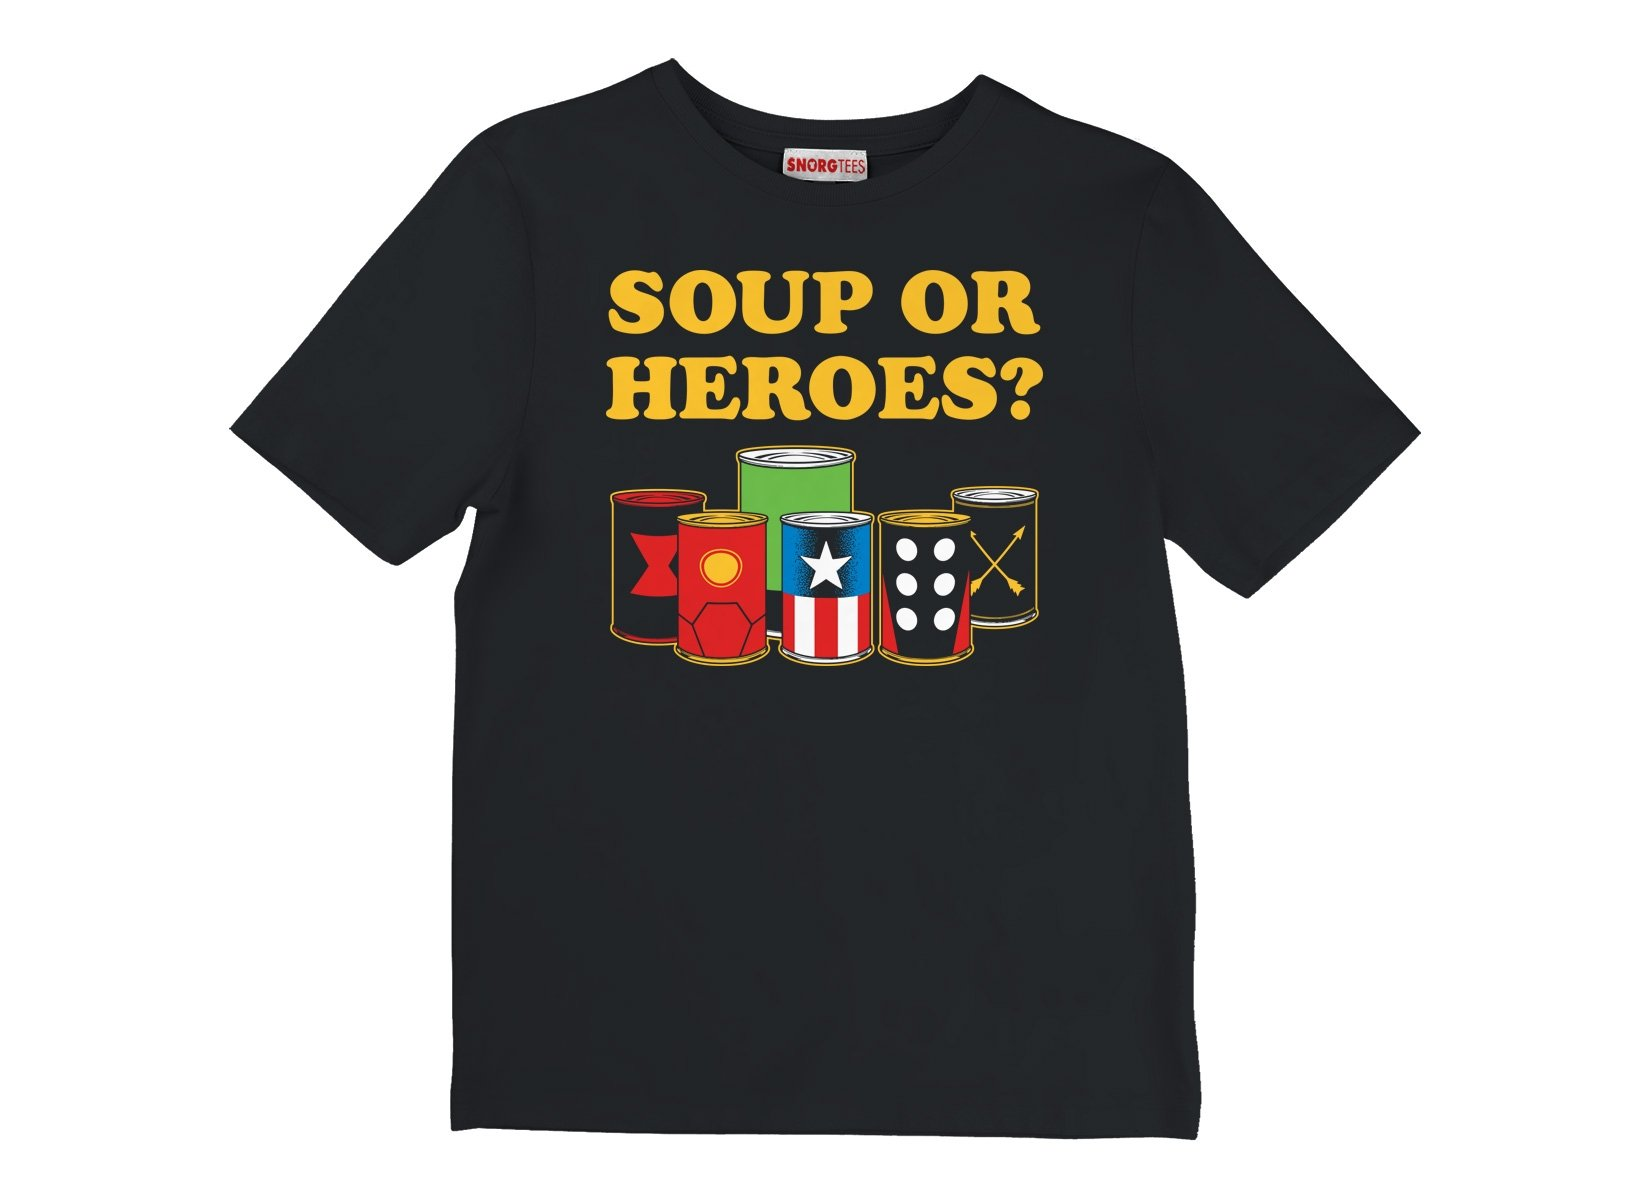 Soup Or Heroes? on Kids T-Shirt